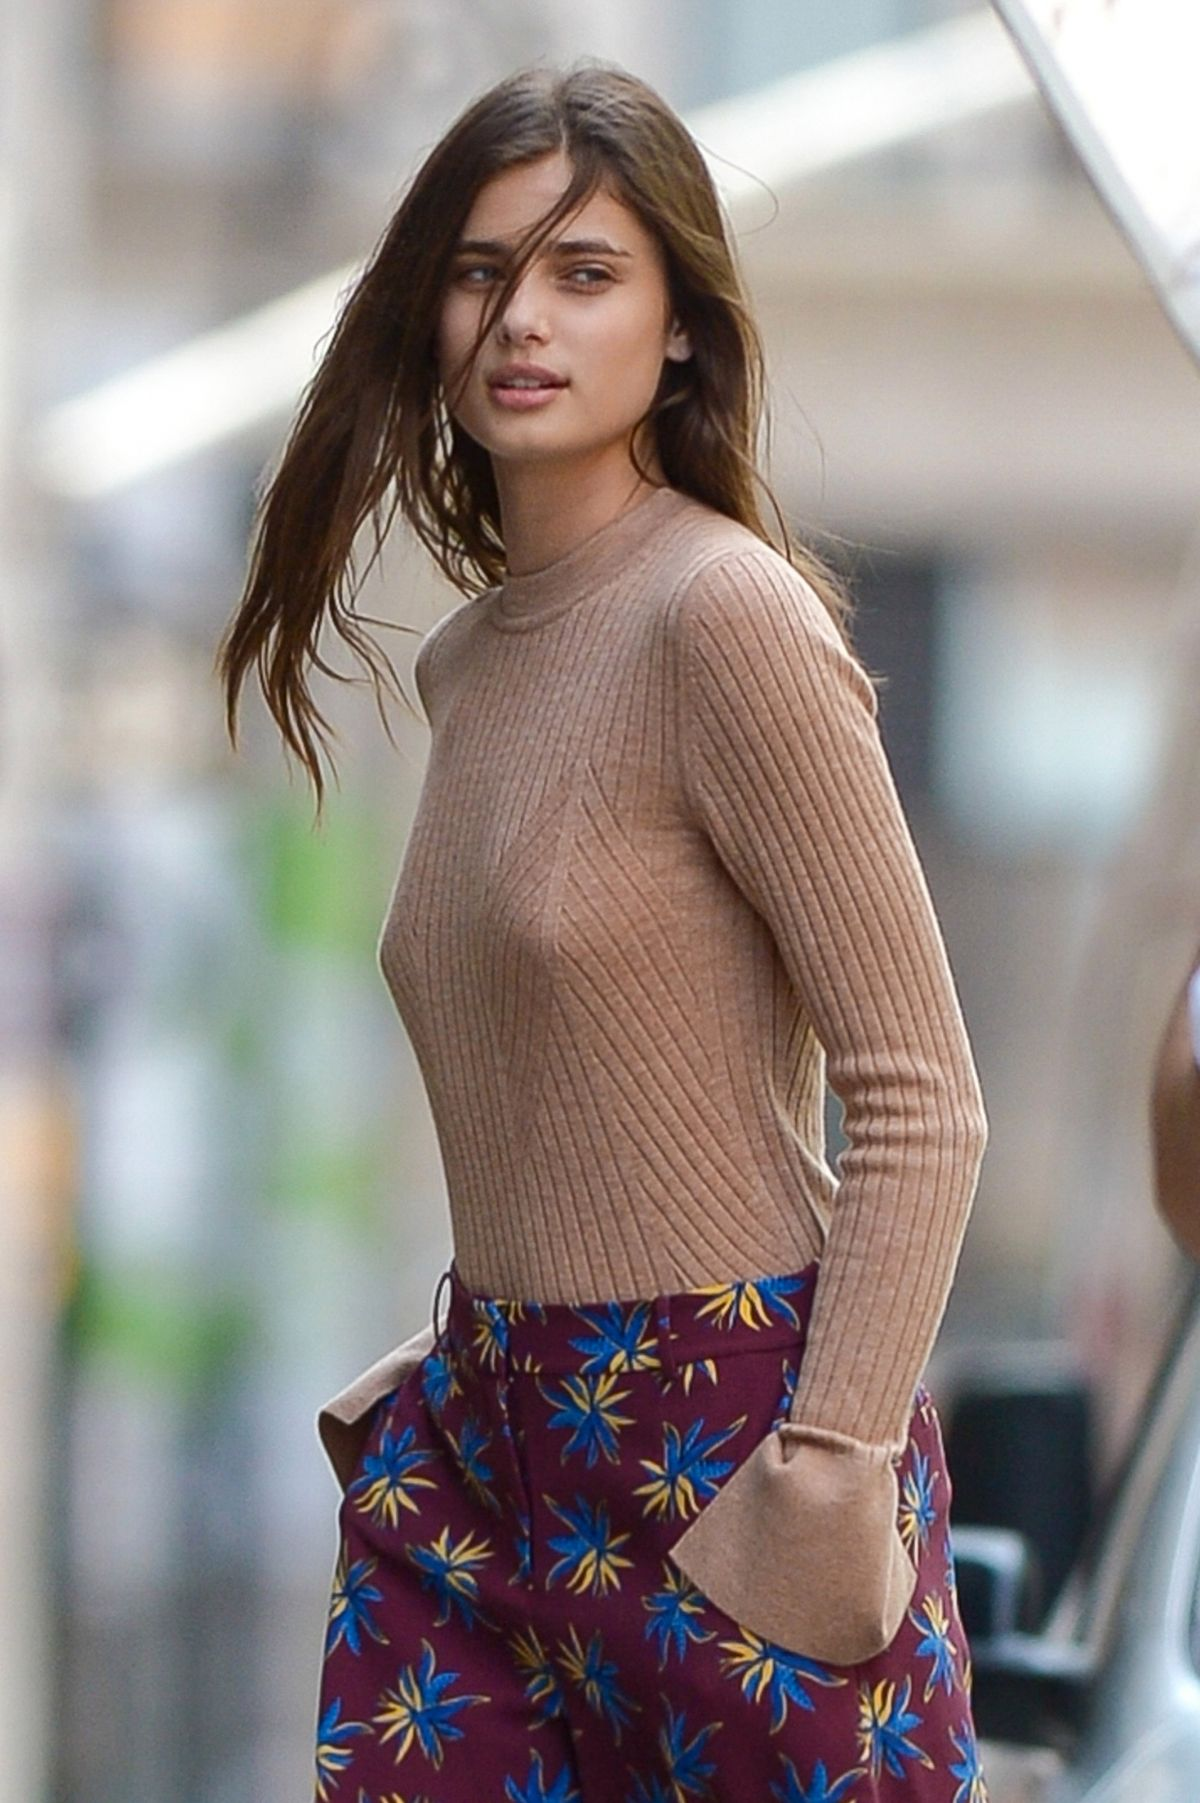 Taylor Hill Archives - Page 5 of 8 - HawtCelebs - HawtCelebs